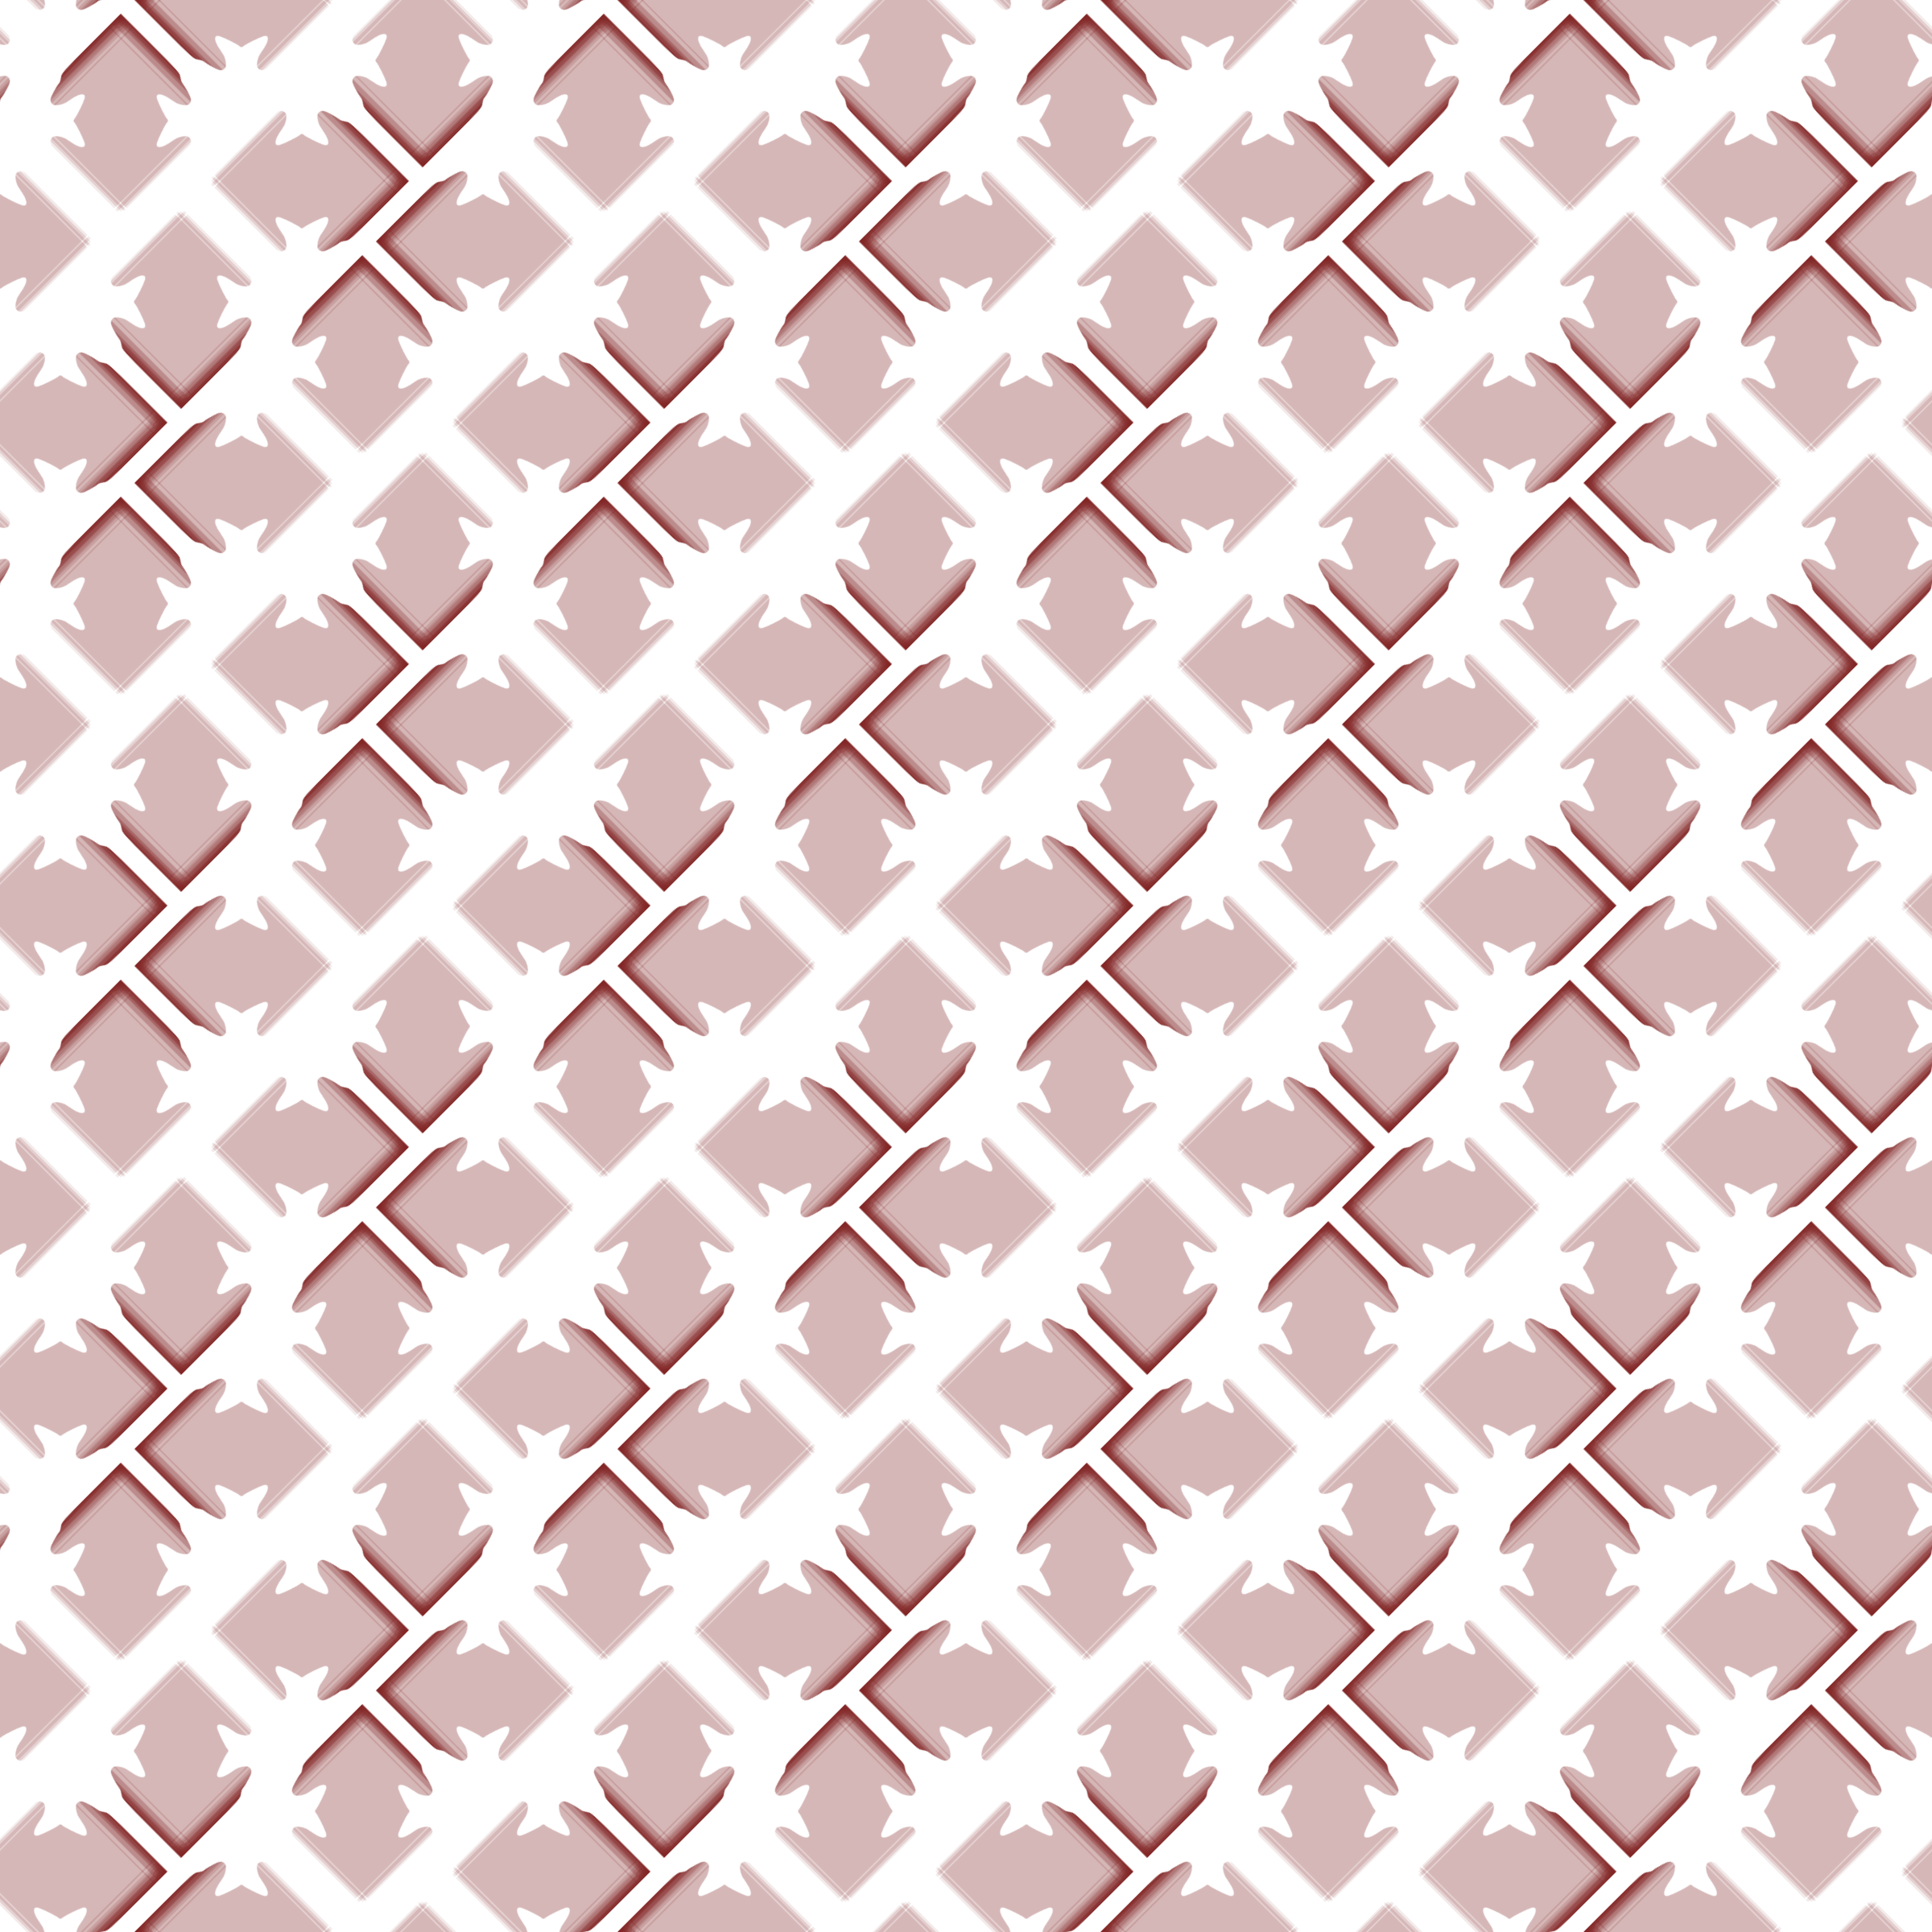 Background pattern 179 colour variant 1 by Firkin